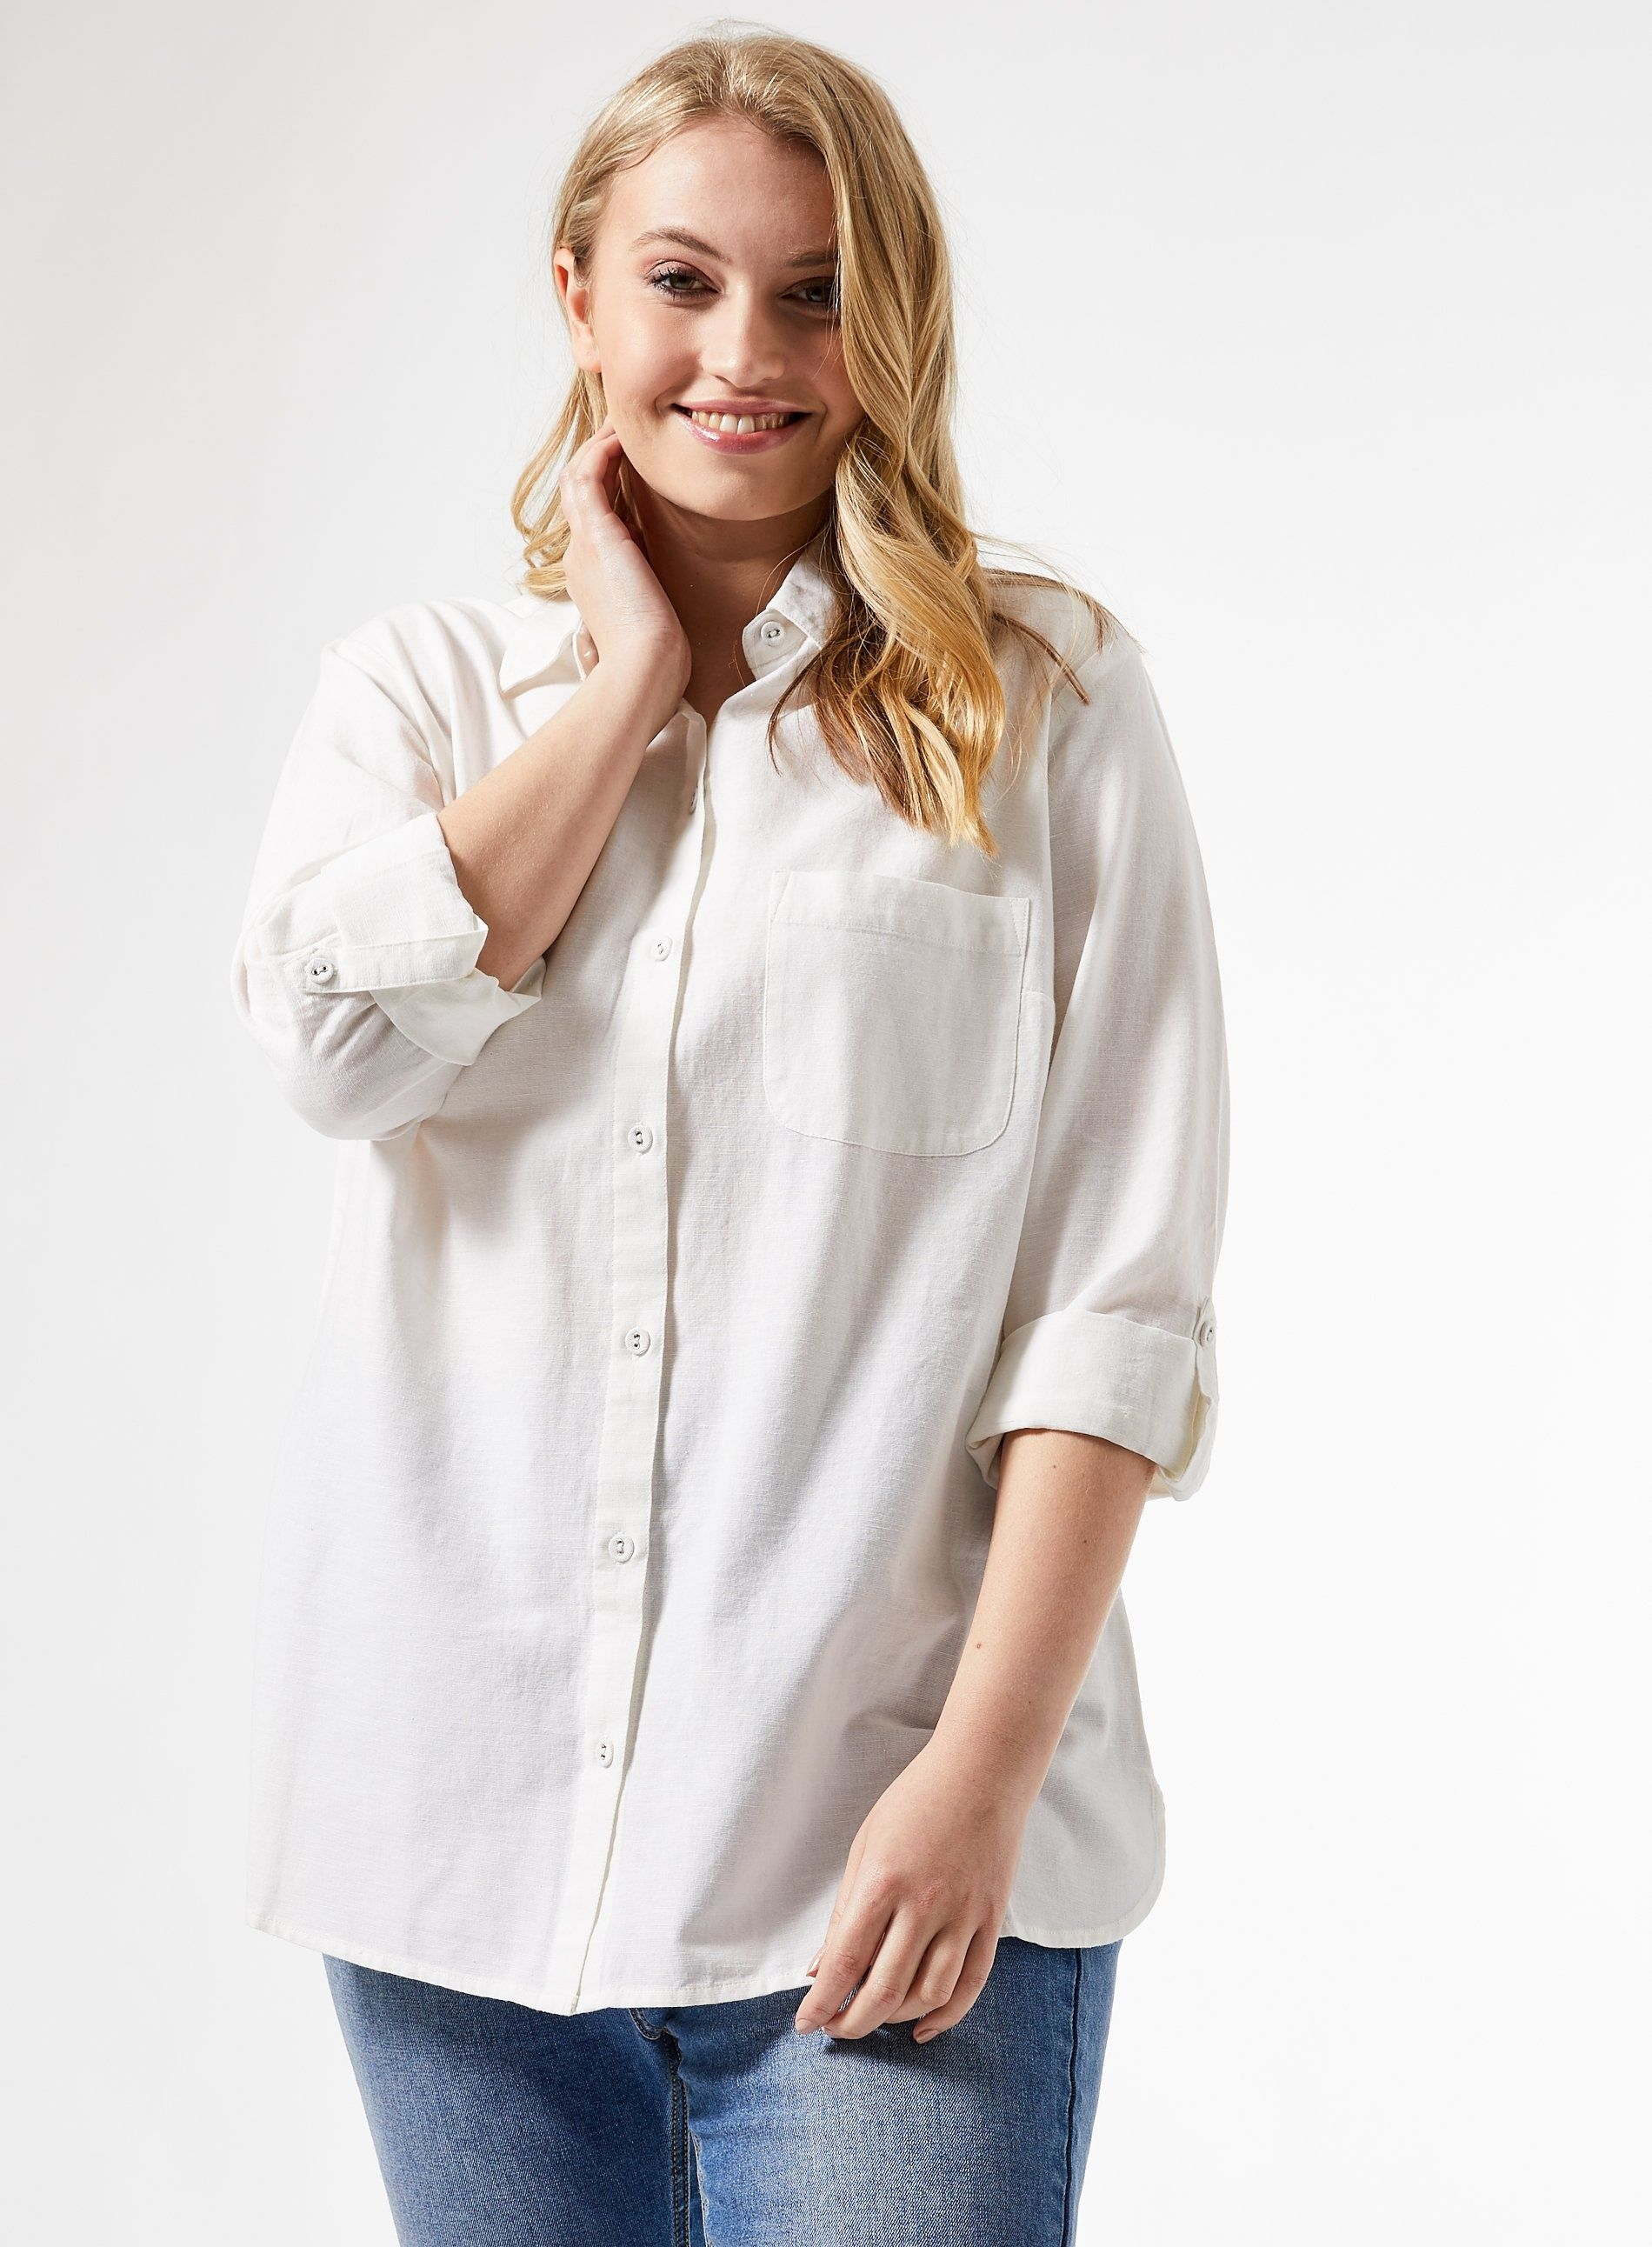 Dorothy Perkins Womens Curve White Shirt Linen 3/4 Sleeve Front Pocket Top